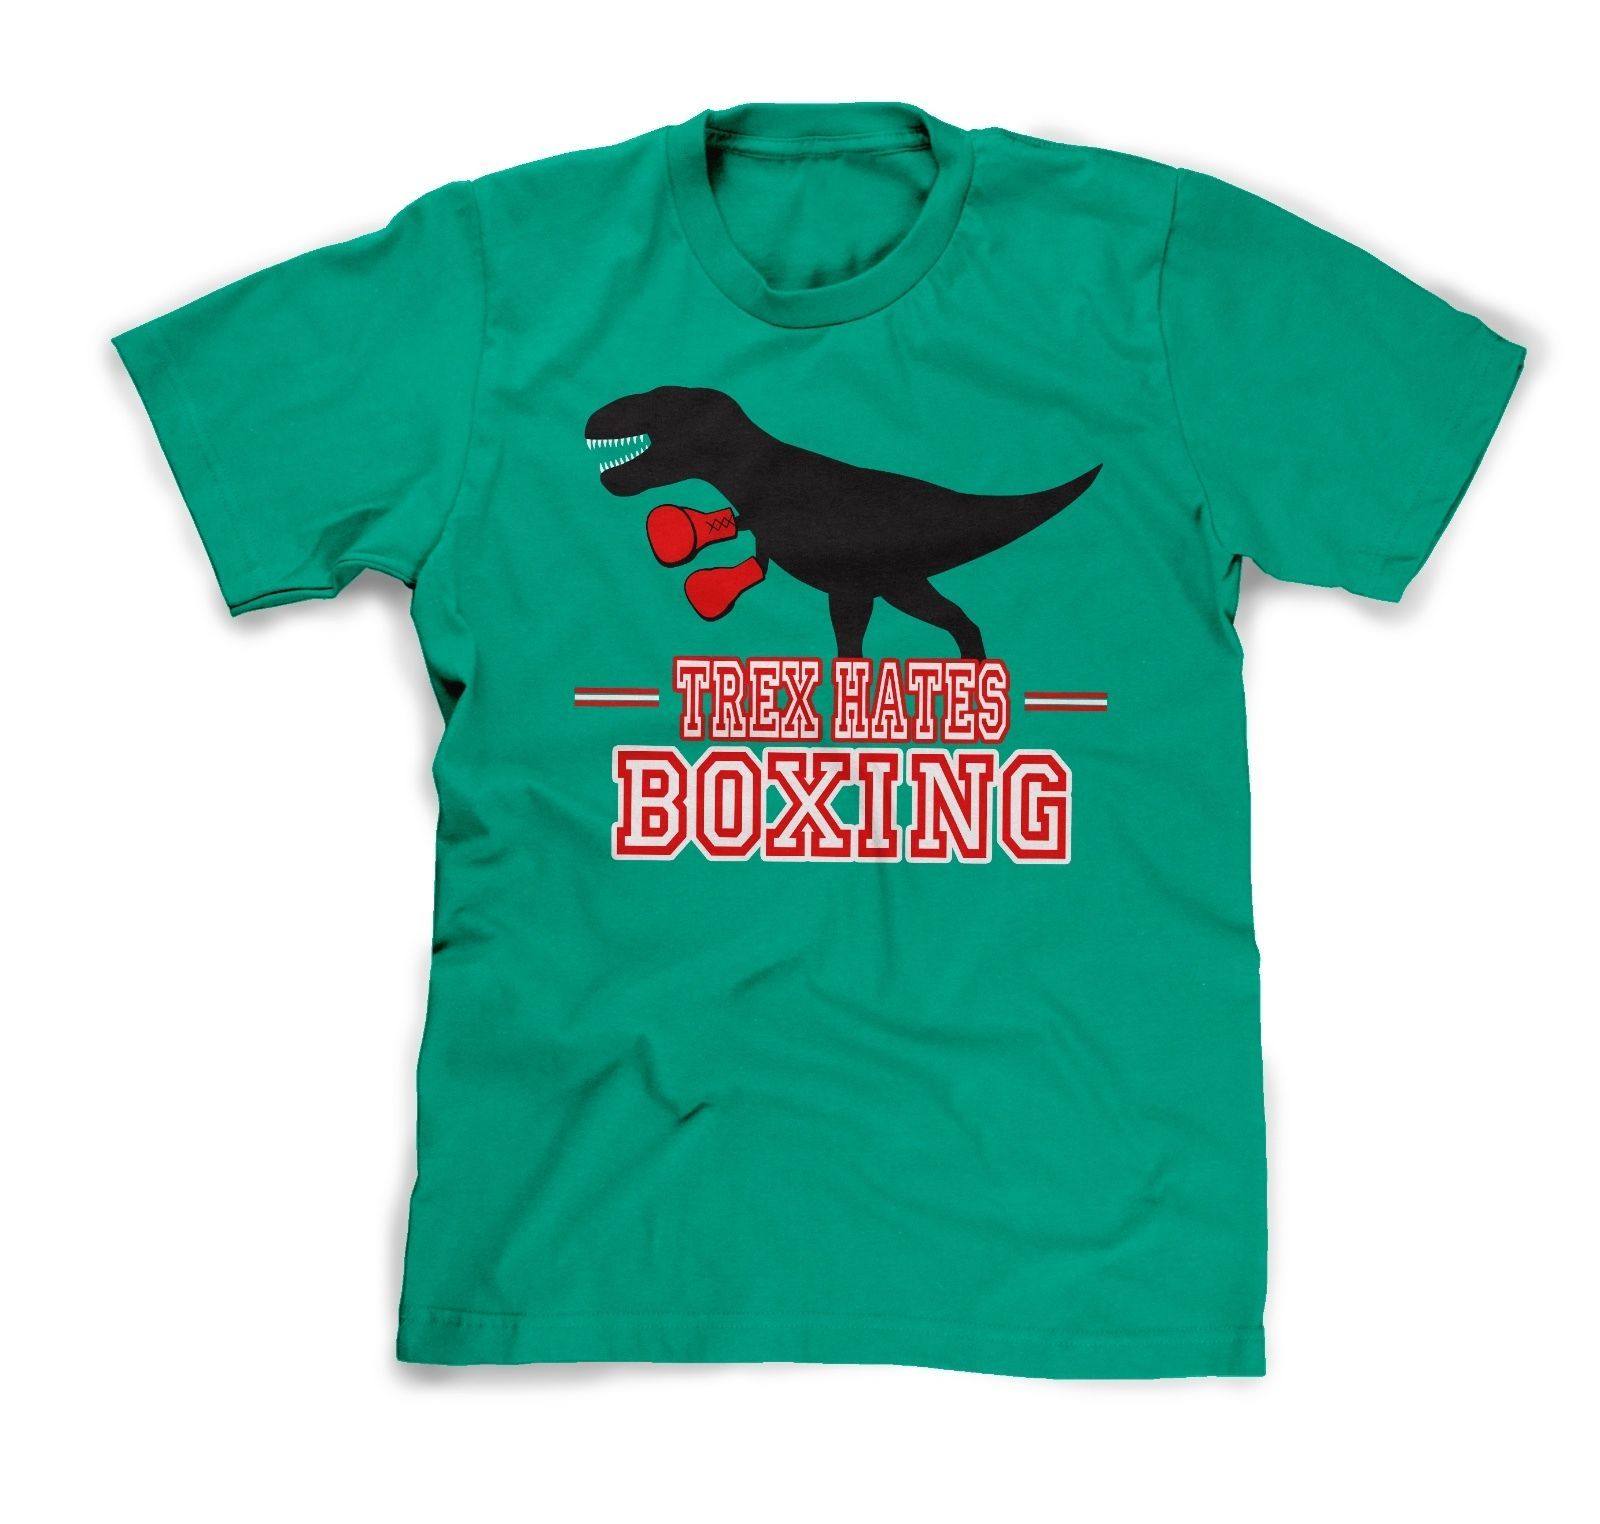 trex t-shirt t-rex hates pushups boxing arm wrestling funny tee mens guys unisex